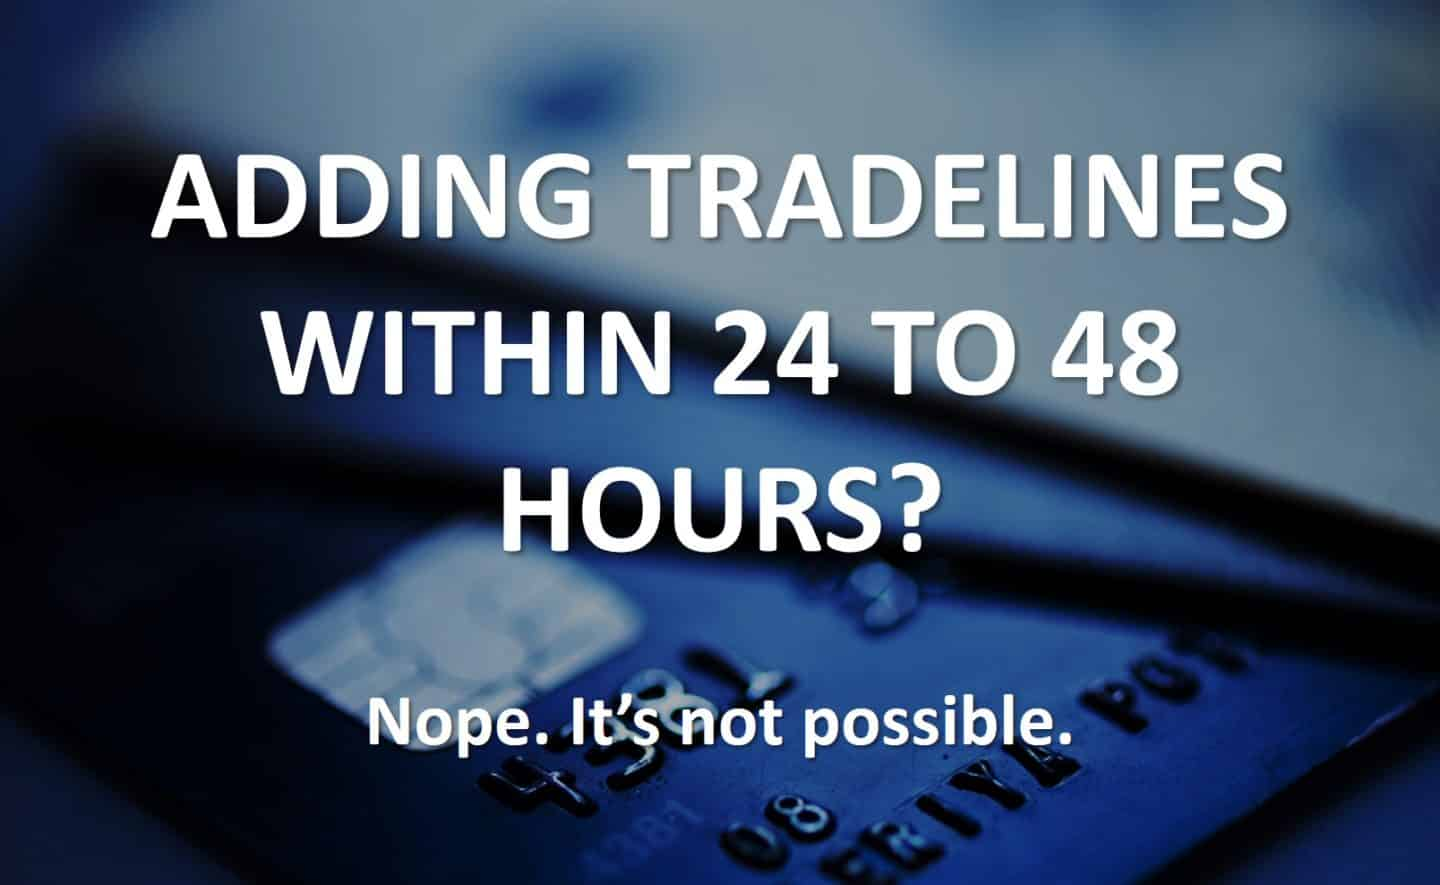 adding tradelines 24 to 48 hours